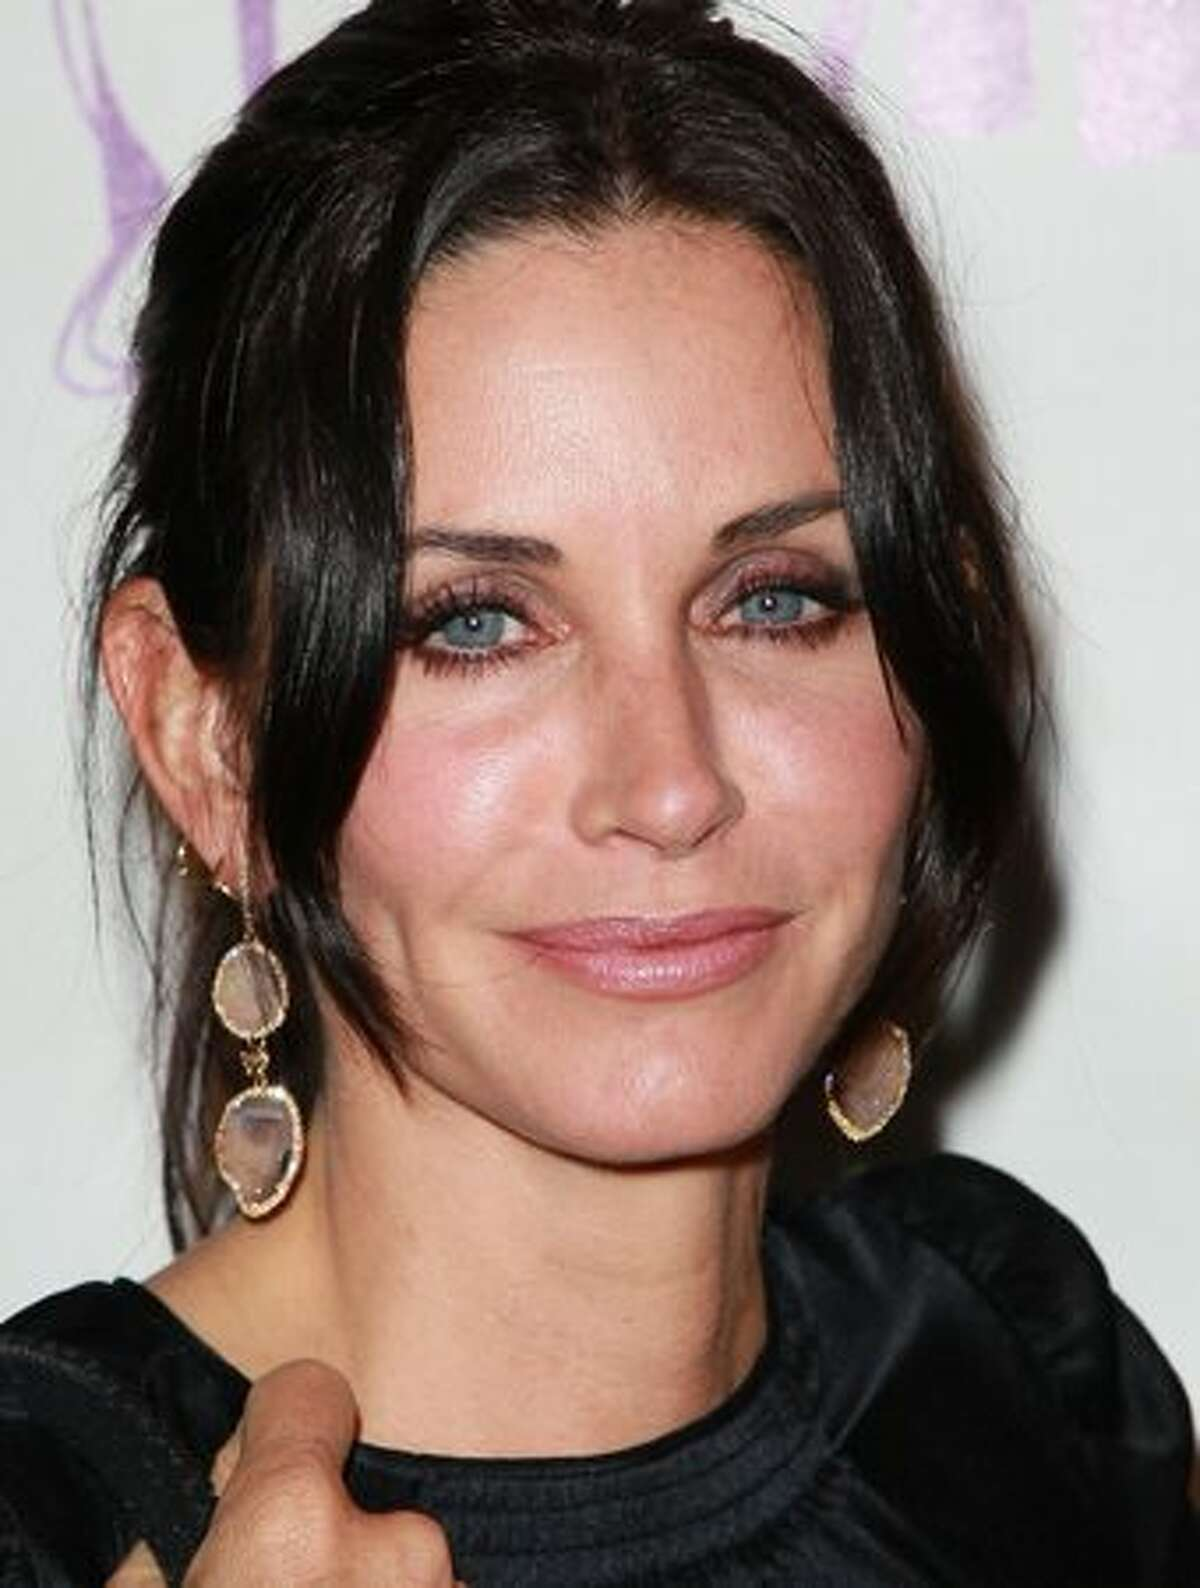 Actress Courteney Cox attends the 15th Annual Los Angeles Antique Show Opening Night Preview Party benefiting P.S. ARTS at Barker Hanger on April 21, 2010 in Santa Monica, California.